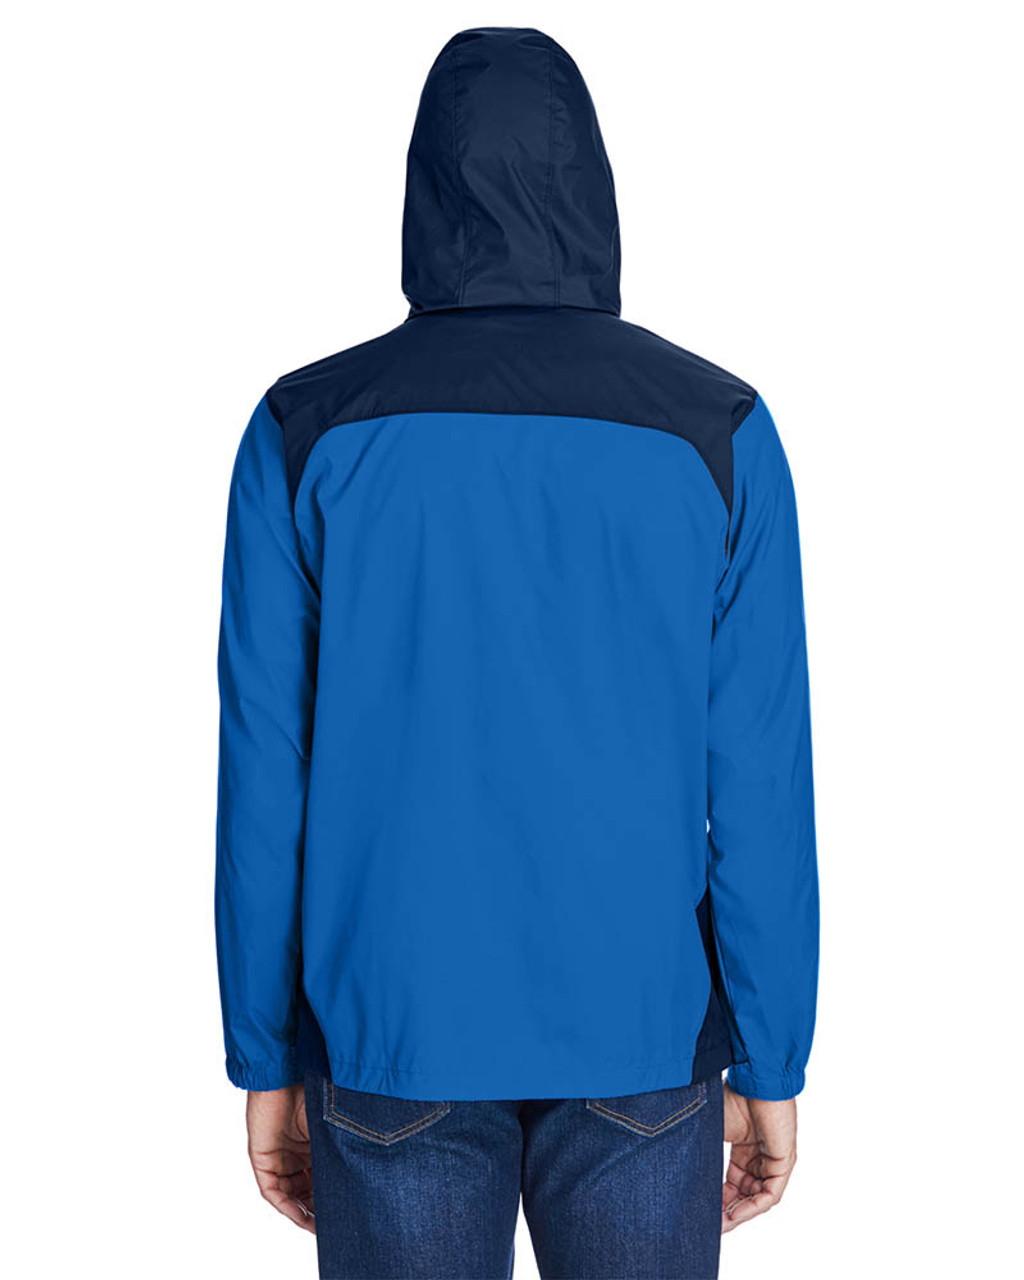 Blue Jay/Navy -Back  2015 Columbia Men's Glennaker Lake™ Rain Jacket  | BlankClothing.ca